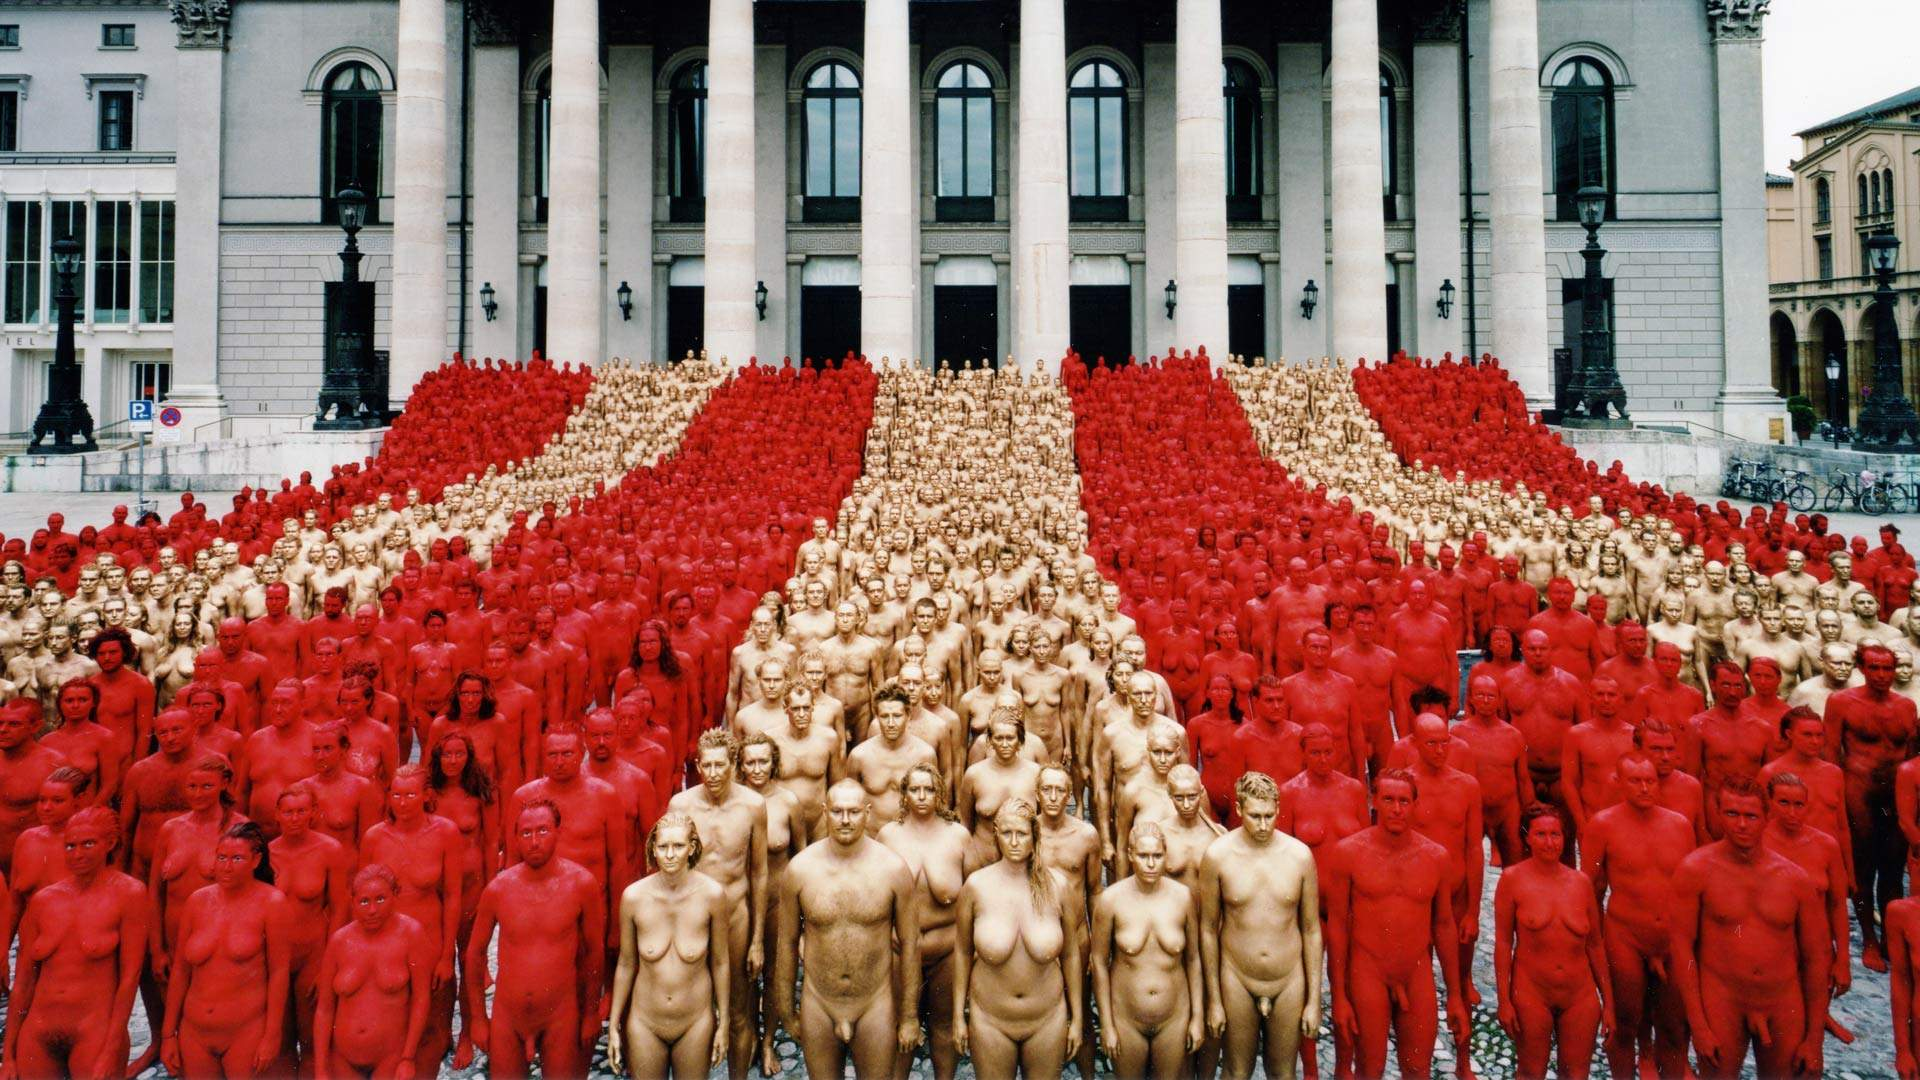 Artist Spencer Tunick Will Stage a Mass Nude Work on a Melbourne Rooftop After All